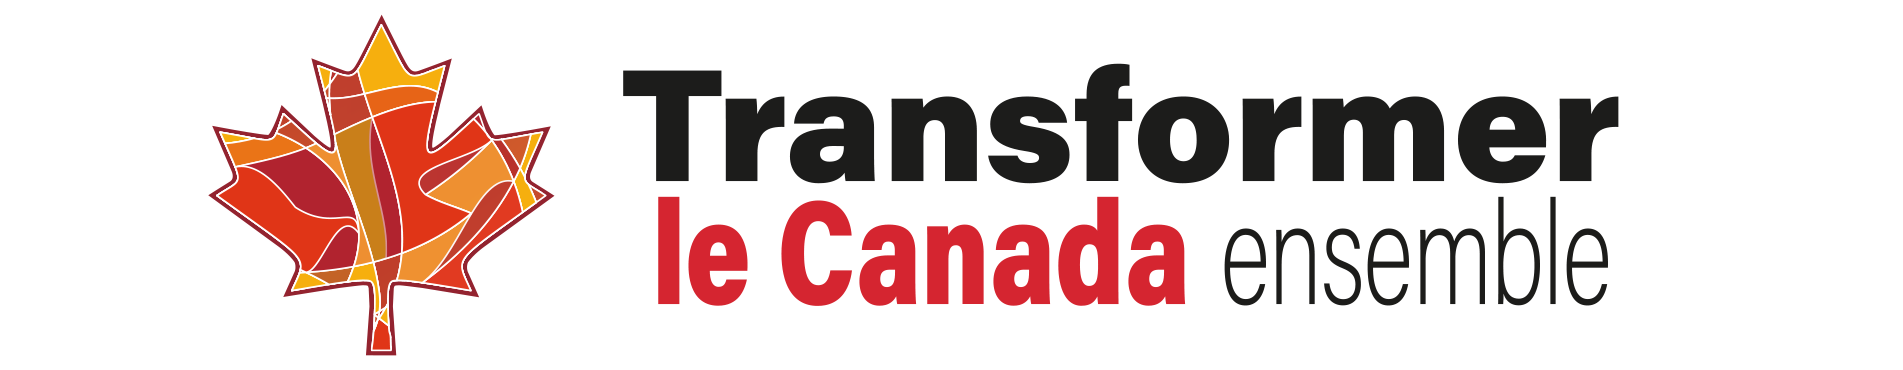 Transforming Canada Together Banner - French